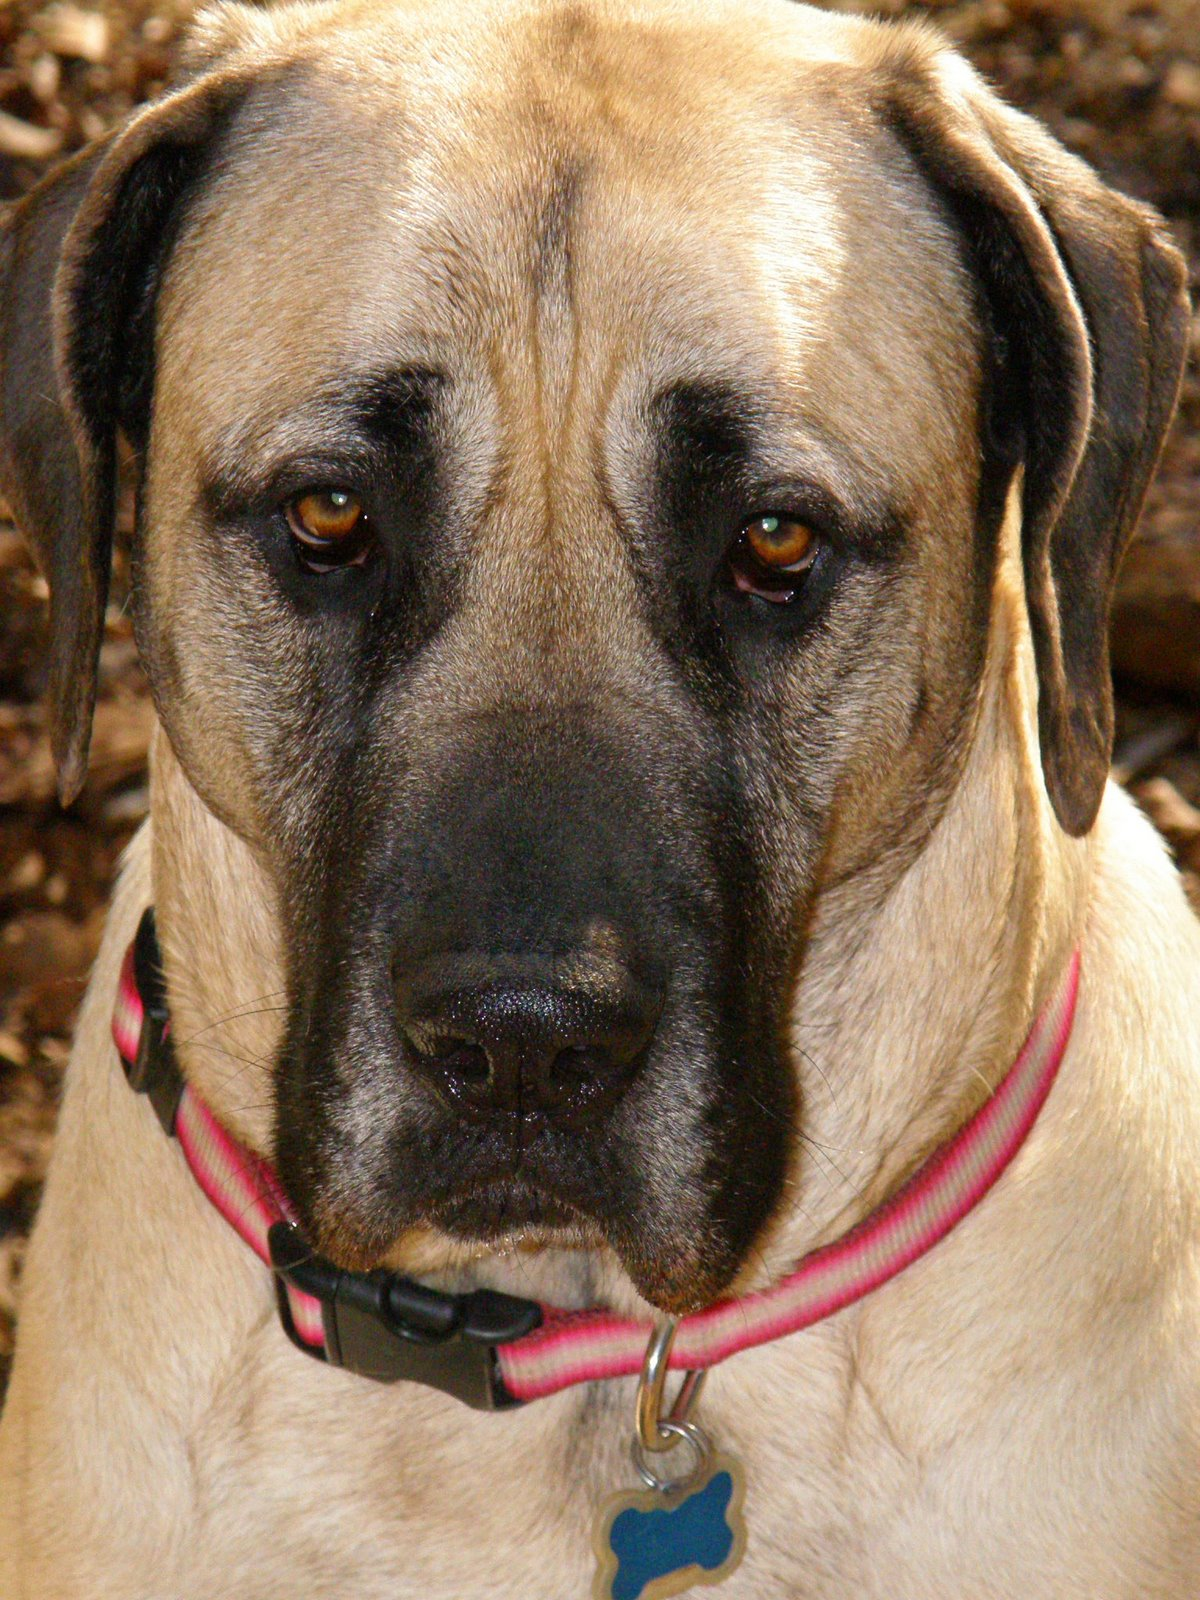 American Mastiff dog face wallpaper